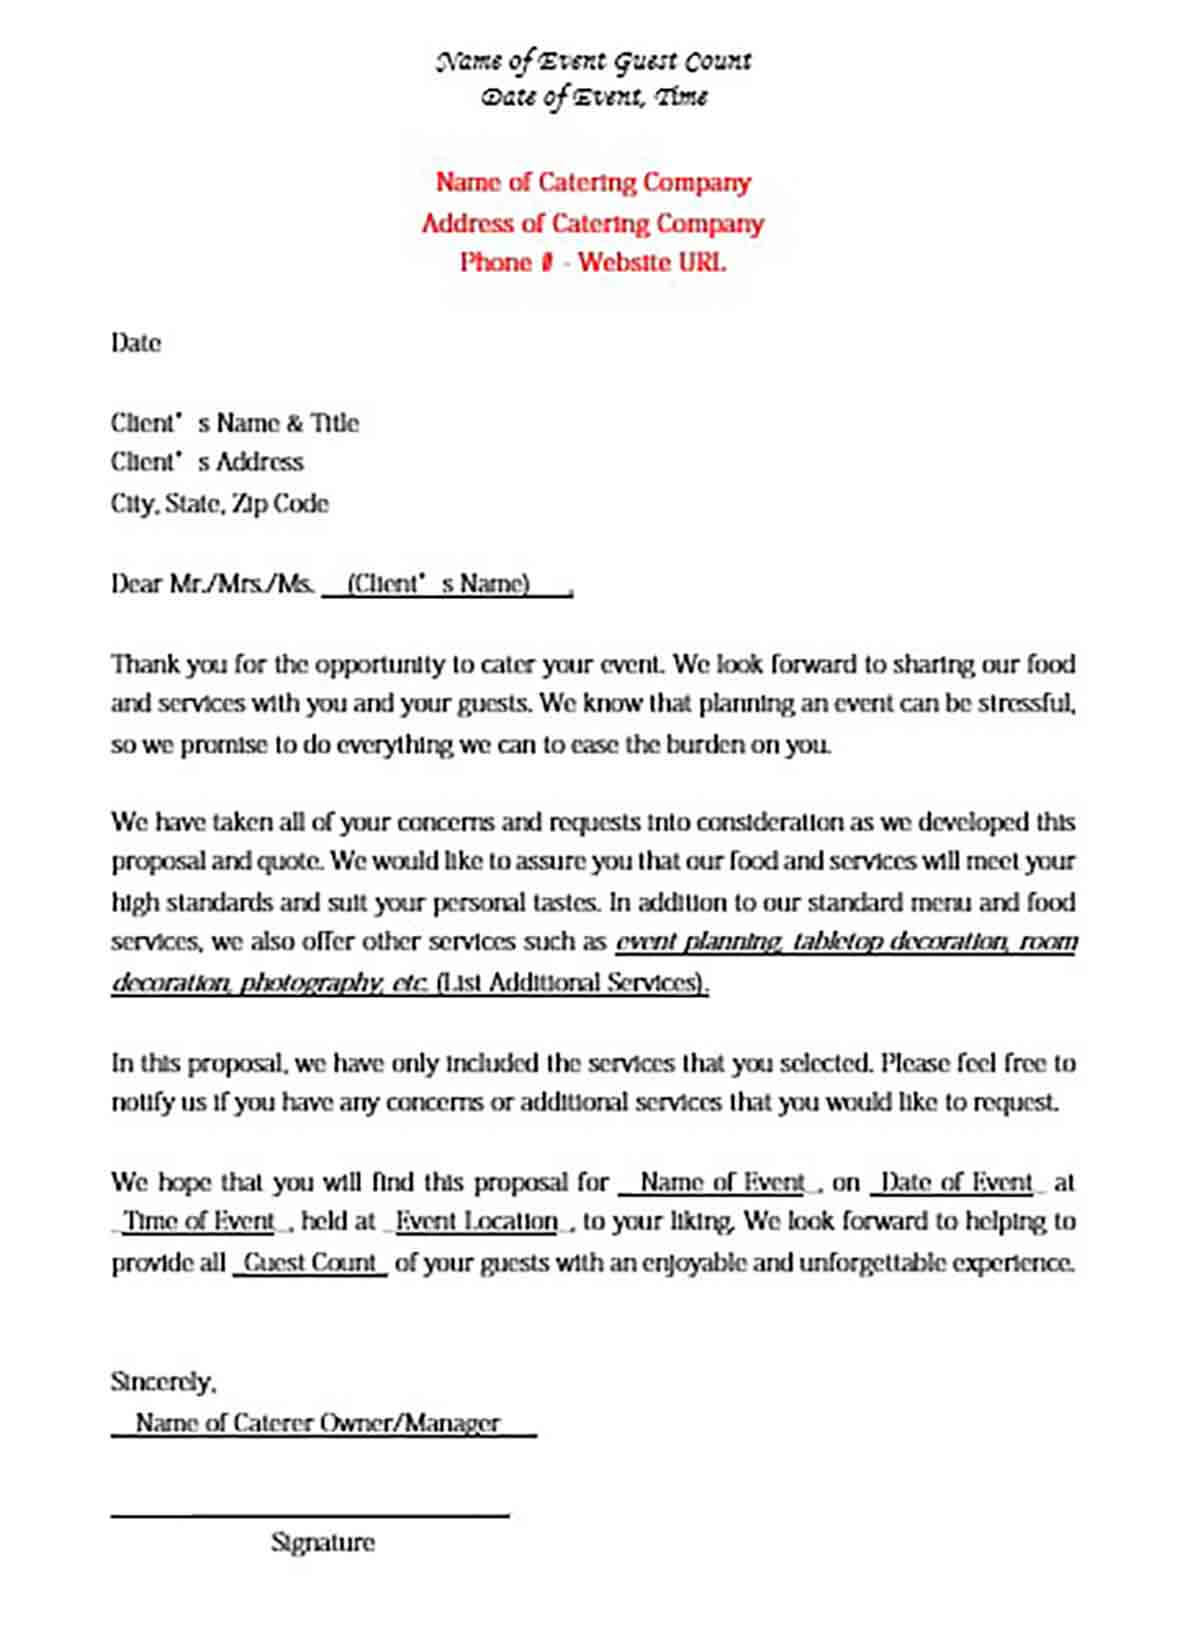 Catering Proposal Letter Format